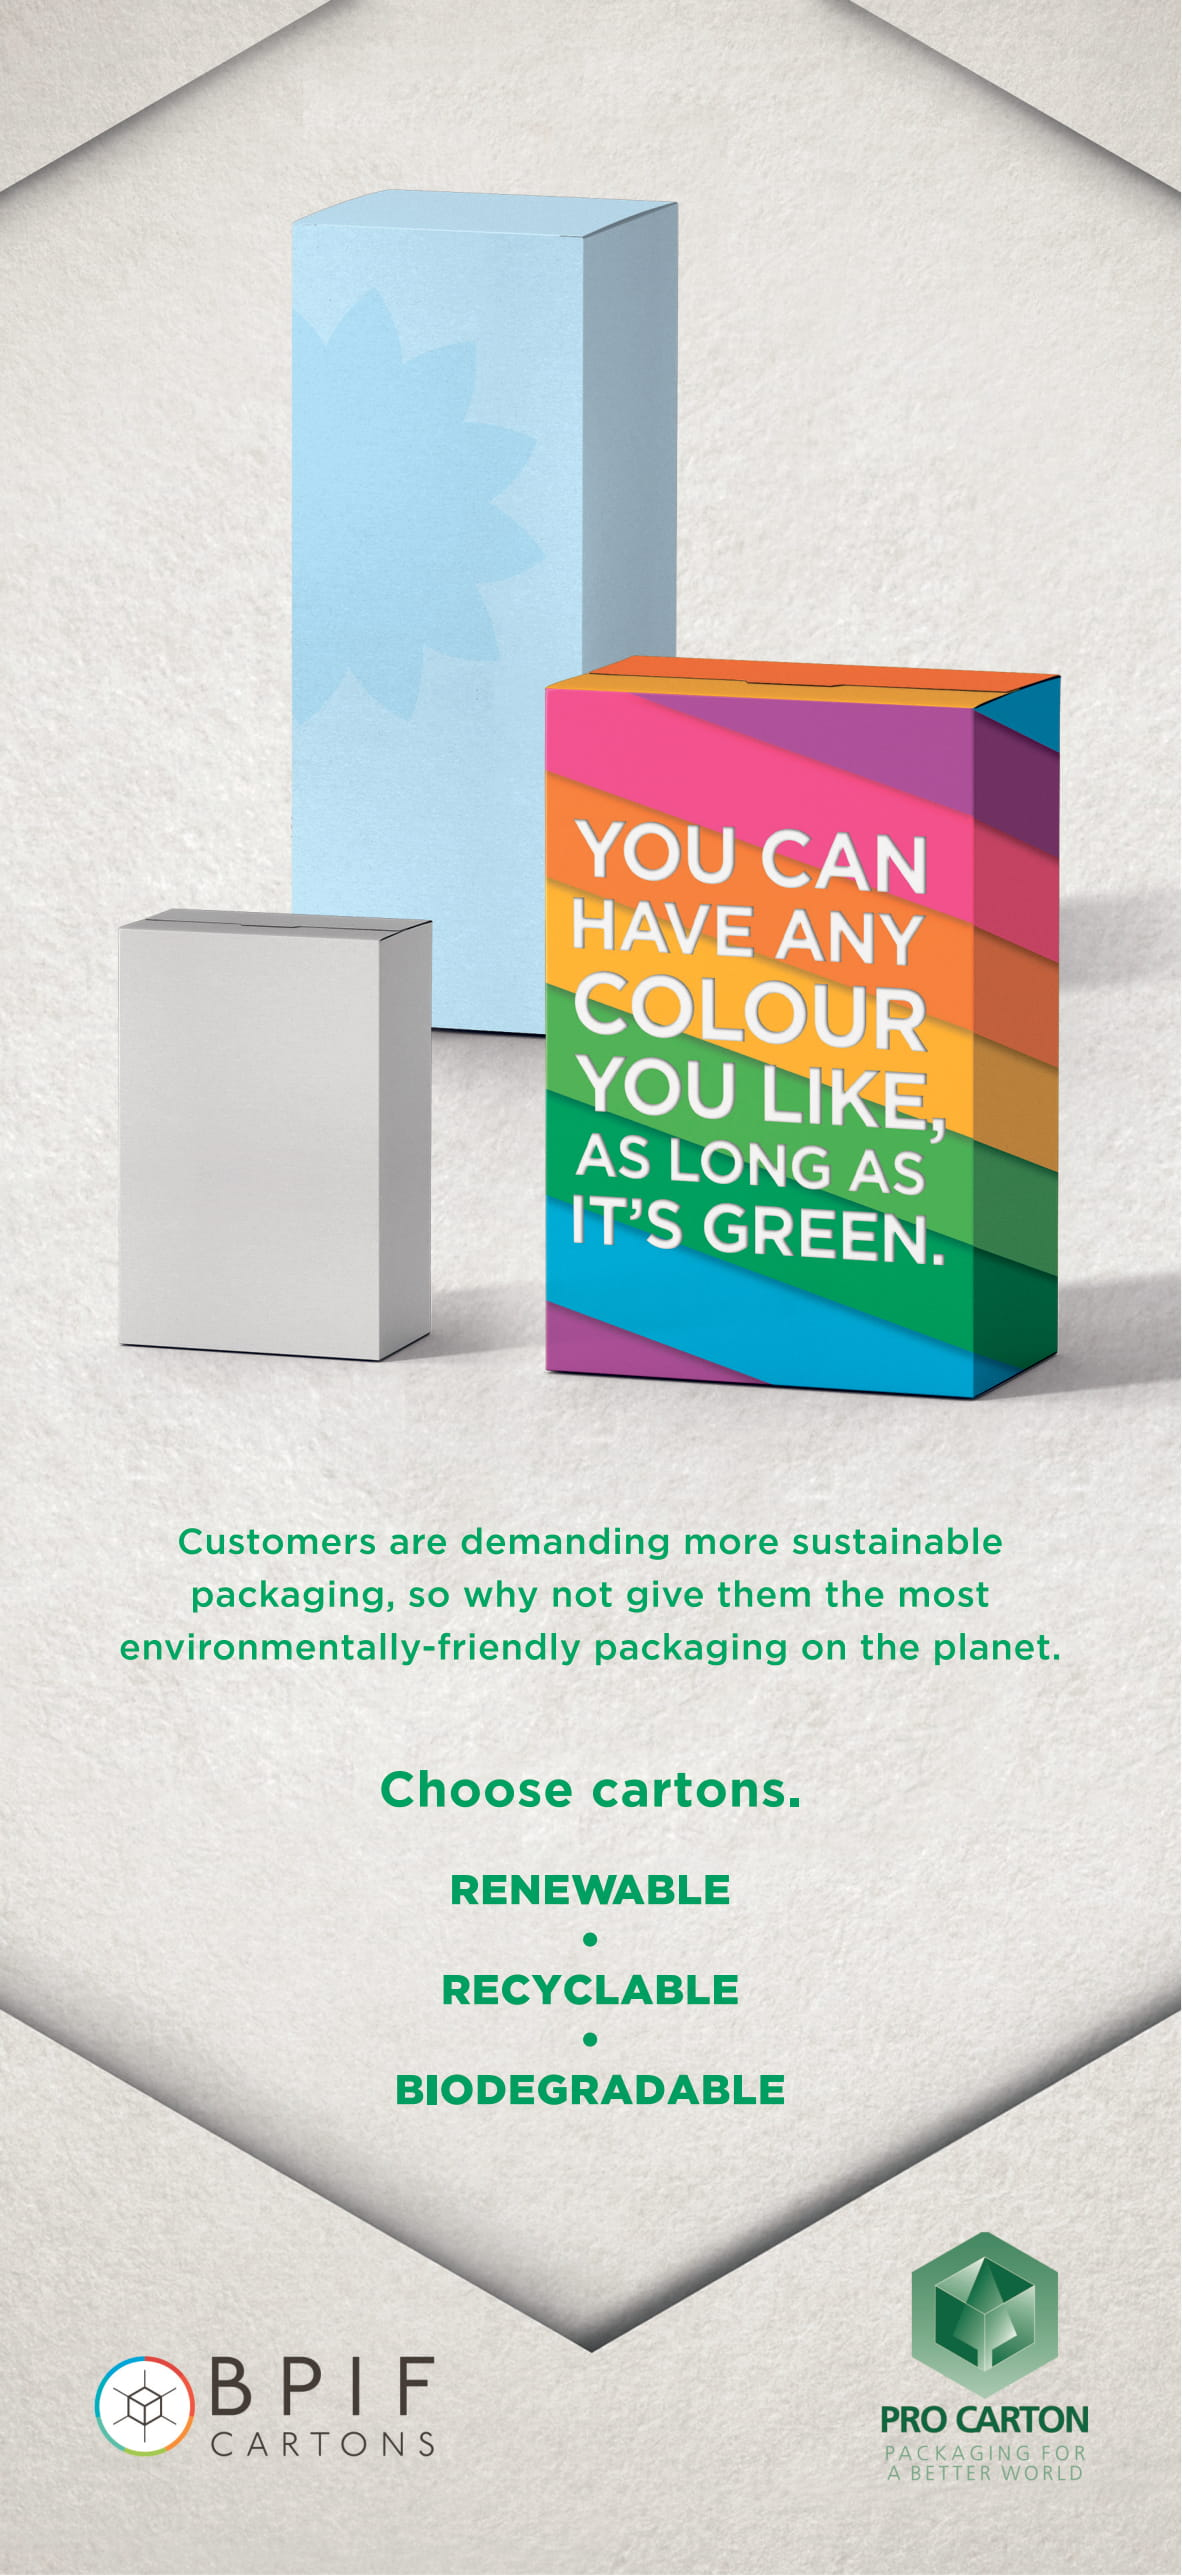 Pro Carton adverts feature in The Times and The Guardian newspapers